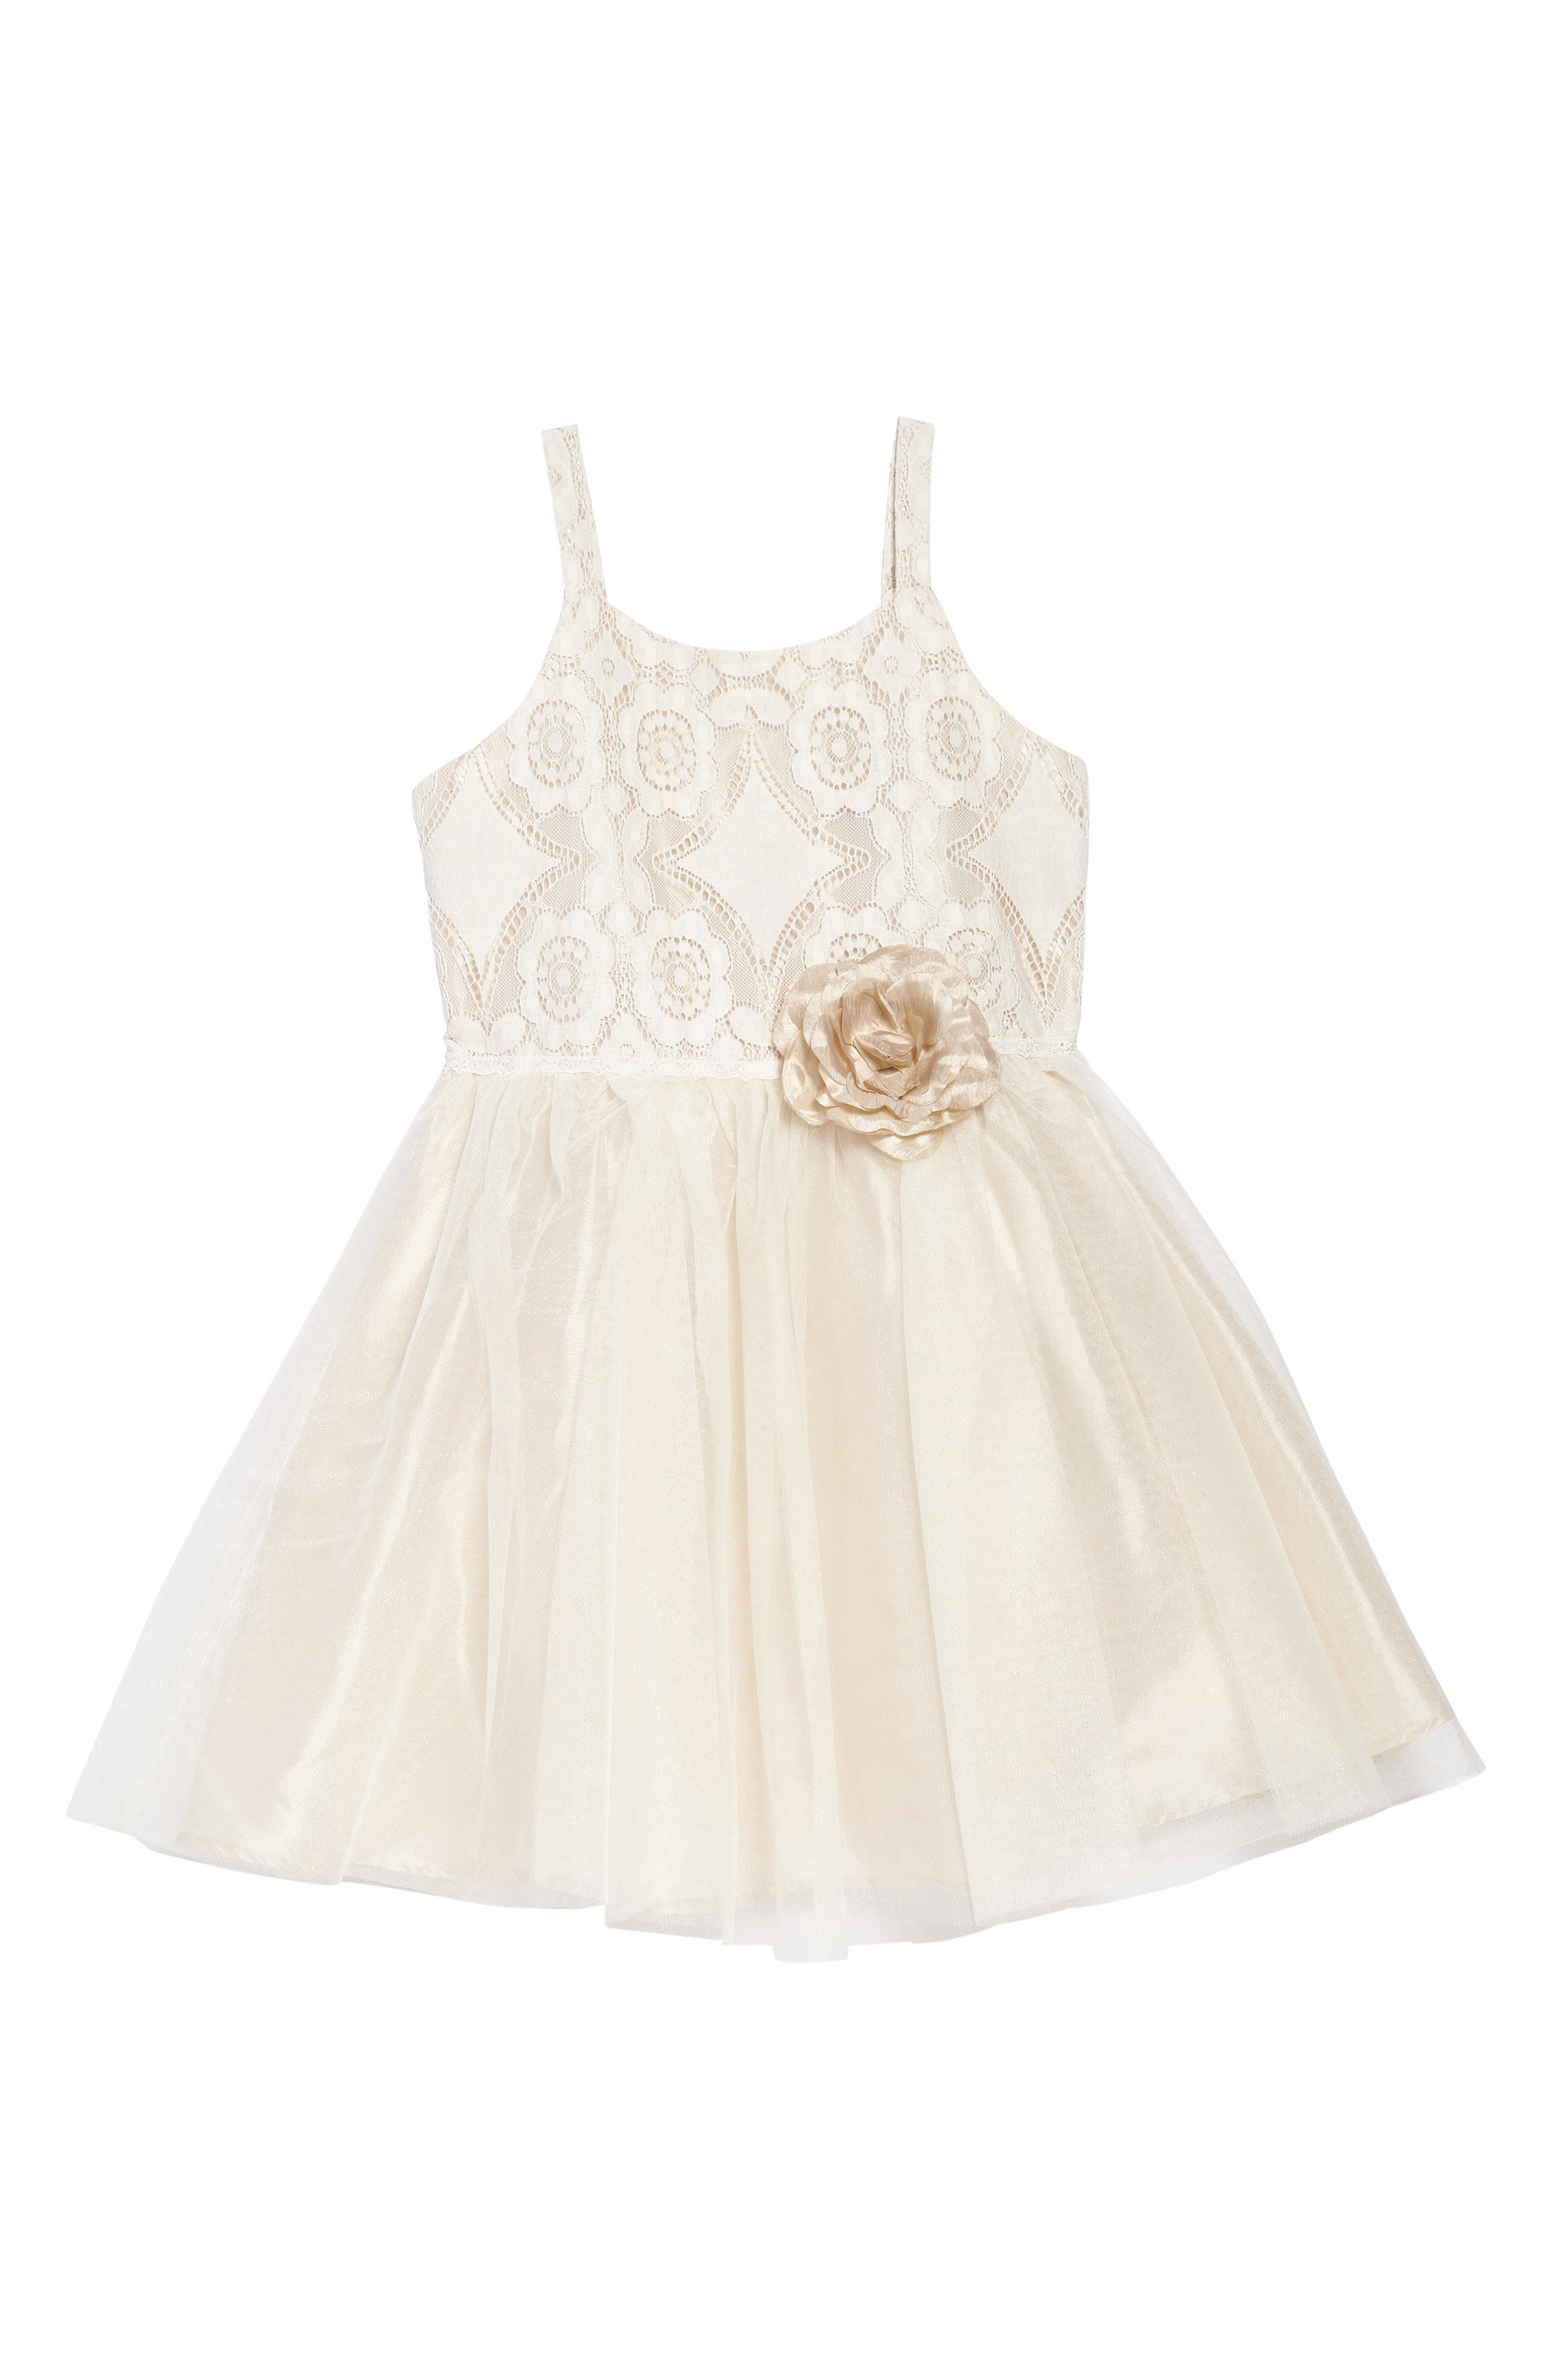 Alternate Image 1 Selected - Zunie Lace & Tulle Party Dress (Big Girls)